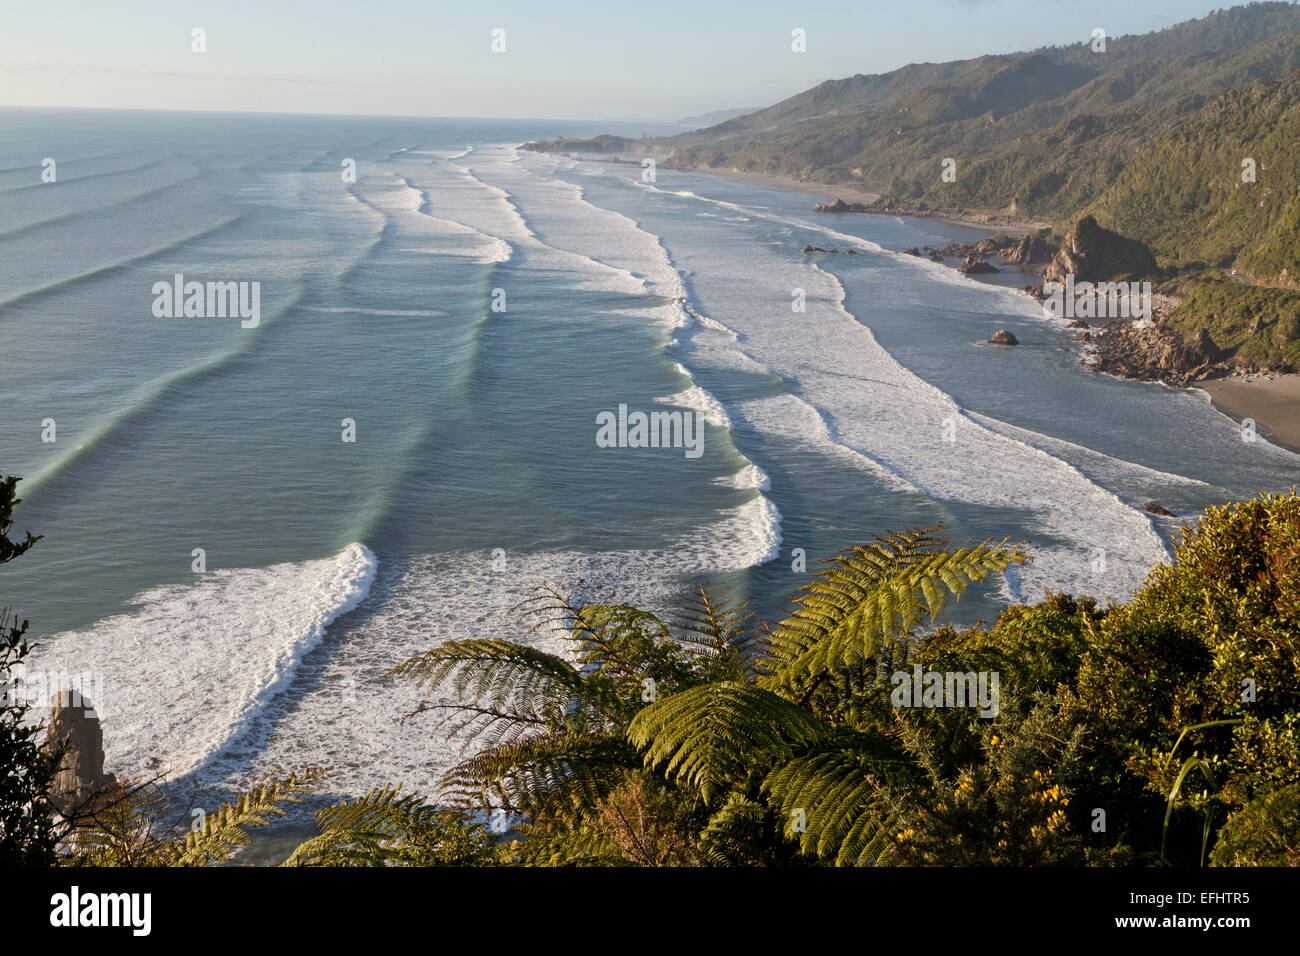 View of breakers and waves on the west coast, Highway 6, Tasman Sea, West Coast, South Island, New Zealand - Stock Image